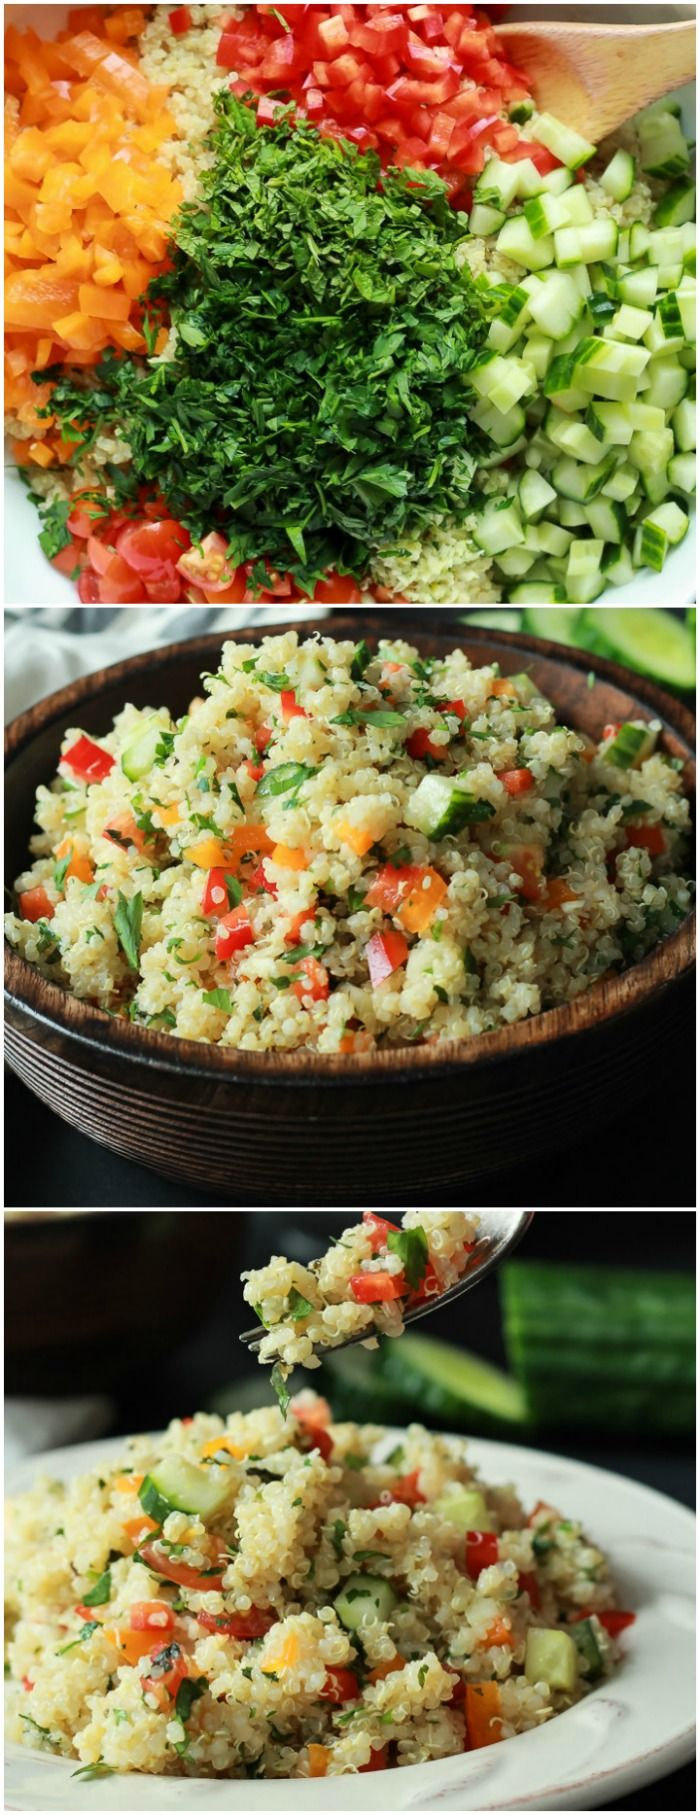 Quinoa Tabbouleh Salad an easy salad recipe that is done in 20 minutes; filled with fresh herbs, fresh vegetables, and lemon juice. Light and low calorie, perfect for the summer!